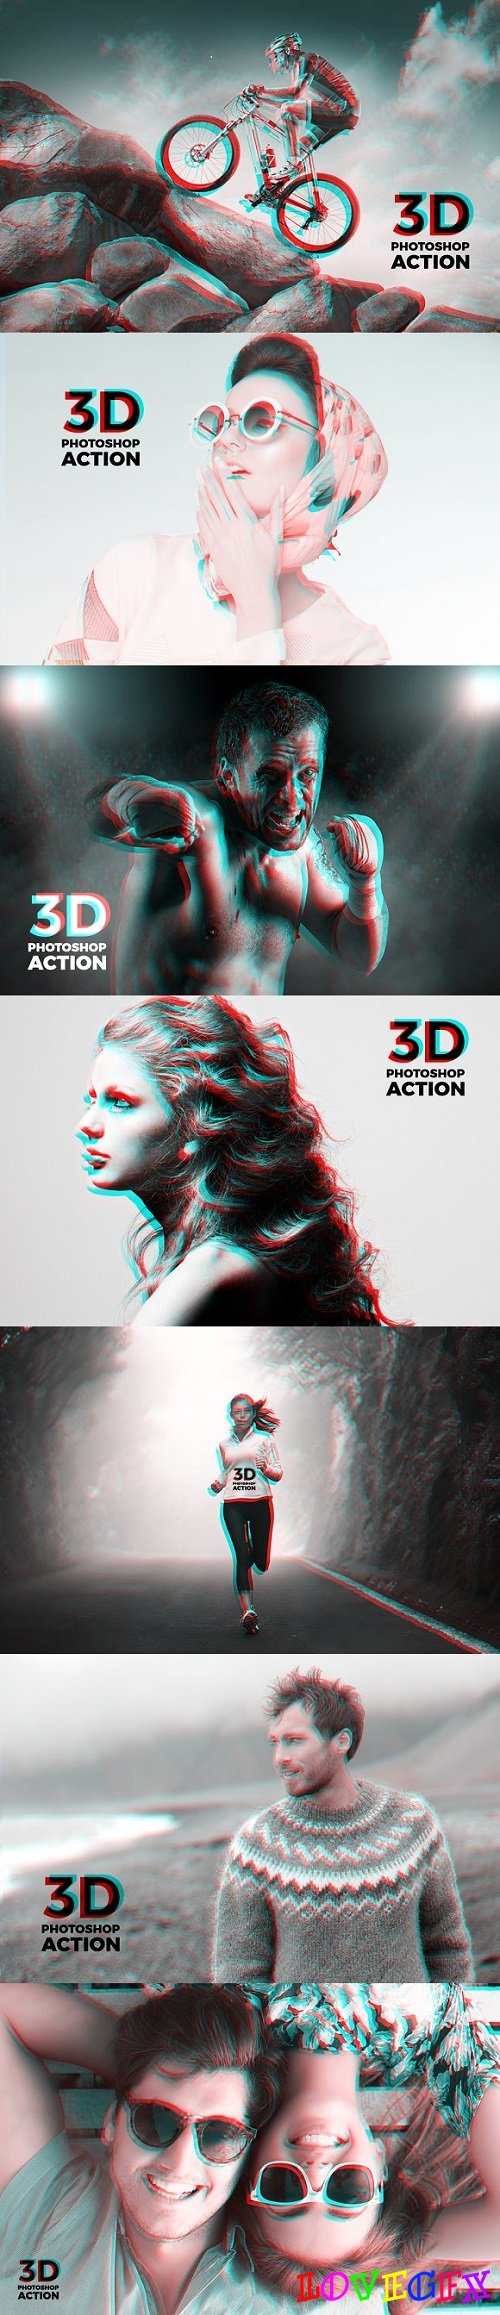 3D Effect Photoshop Action 1591512